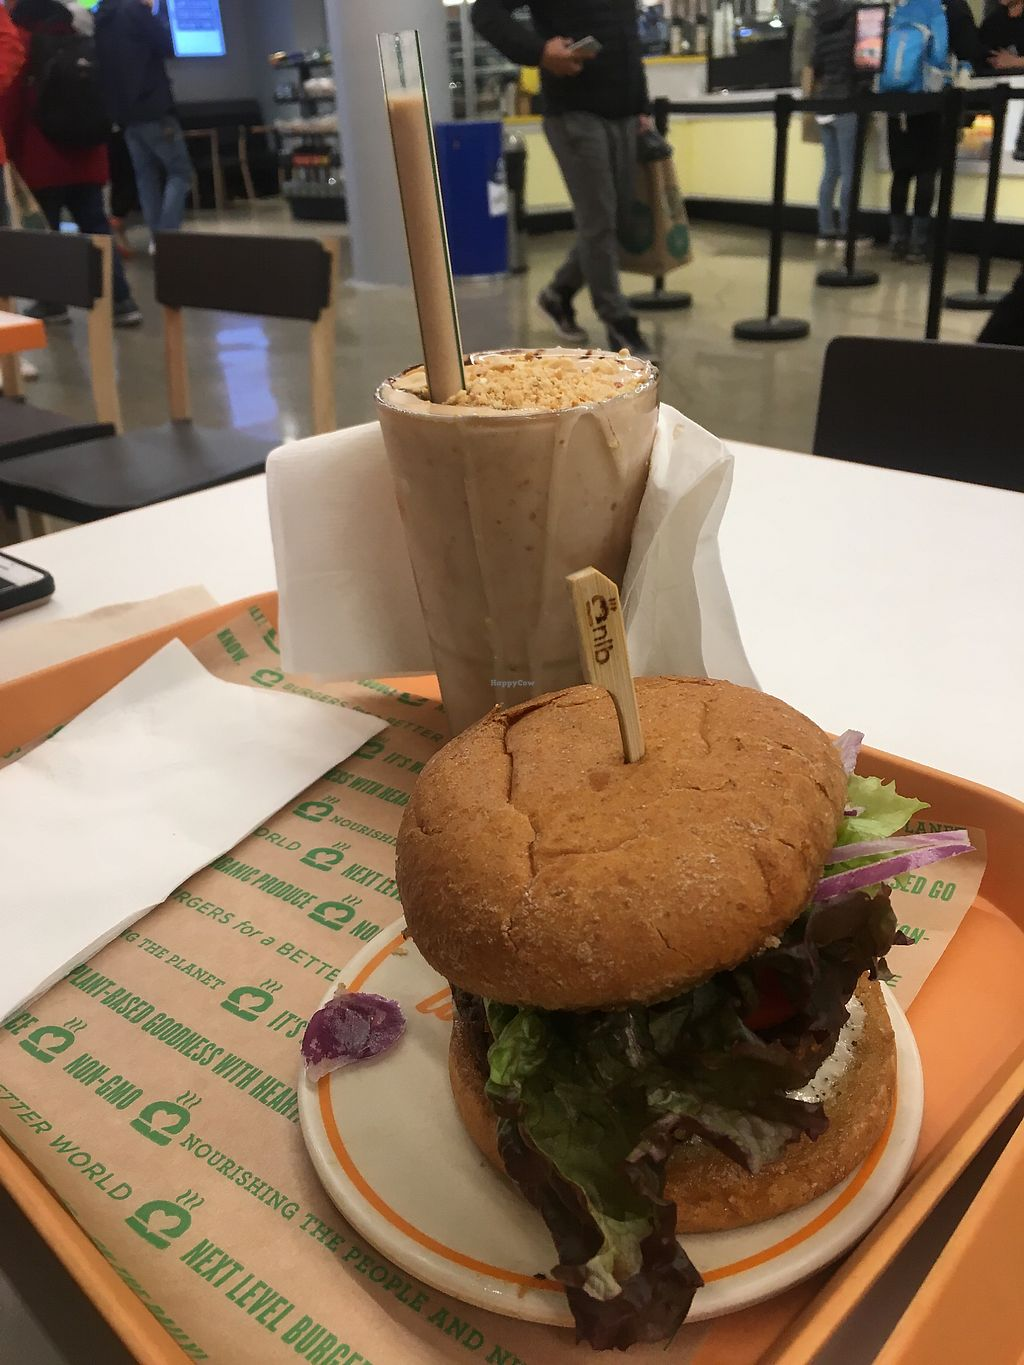 """Photo of Next Level Burger  by <a href=""""/members/profile/770veg"""">770veg</a> <br/>Black bean burger and PB chocolate shake! <br/> March 29, 2018  - <a href='/contact/abuse/image/110829/377924'>Report</a>"""